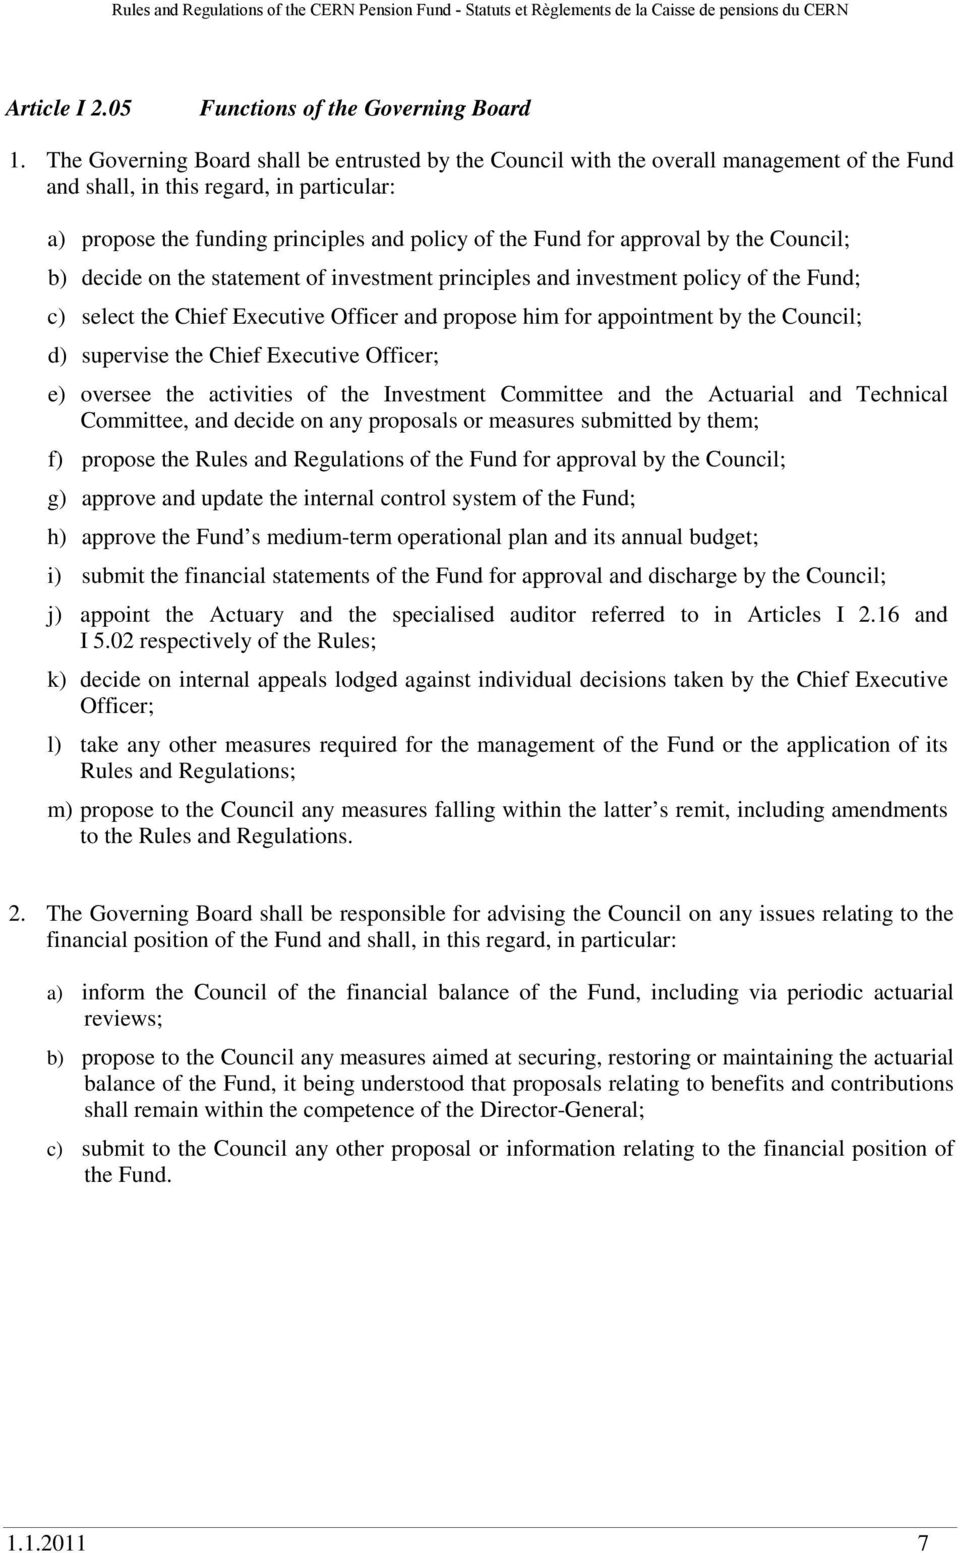 approval by the Council; b) decide on the statement of investment principles and investment policy of the Fund; c) select the Chief Executive Officer and propose him for appointment by the Council;